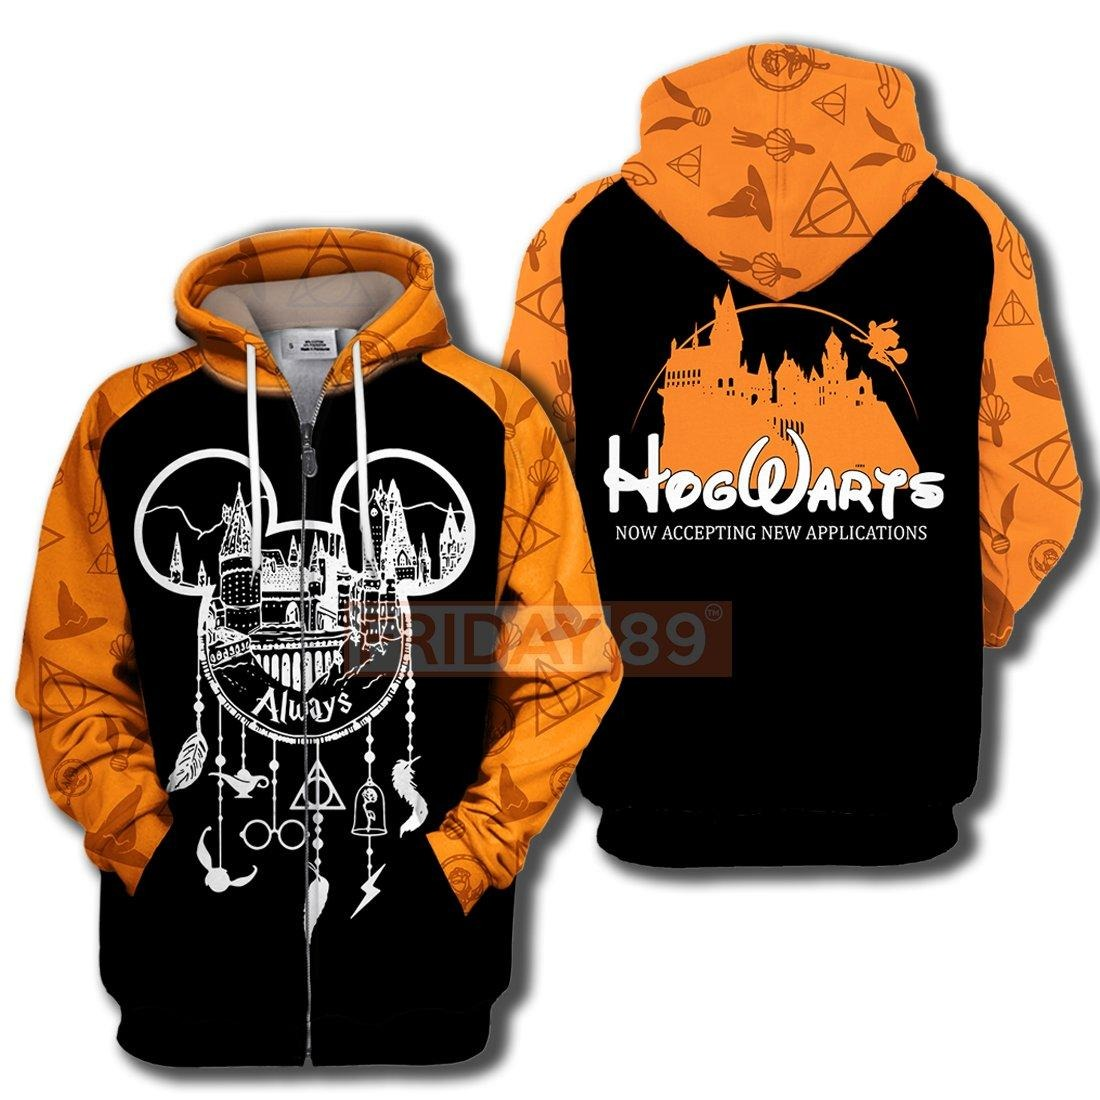 Hogwarts always dreamcatcher now accepting new appilcation 3d hoodie and zip